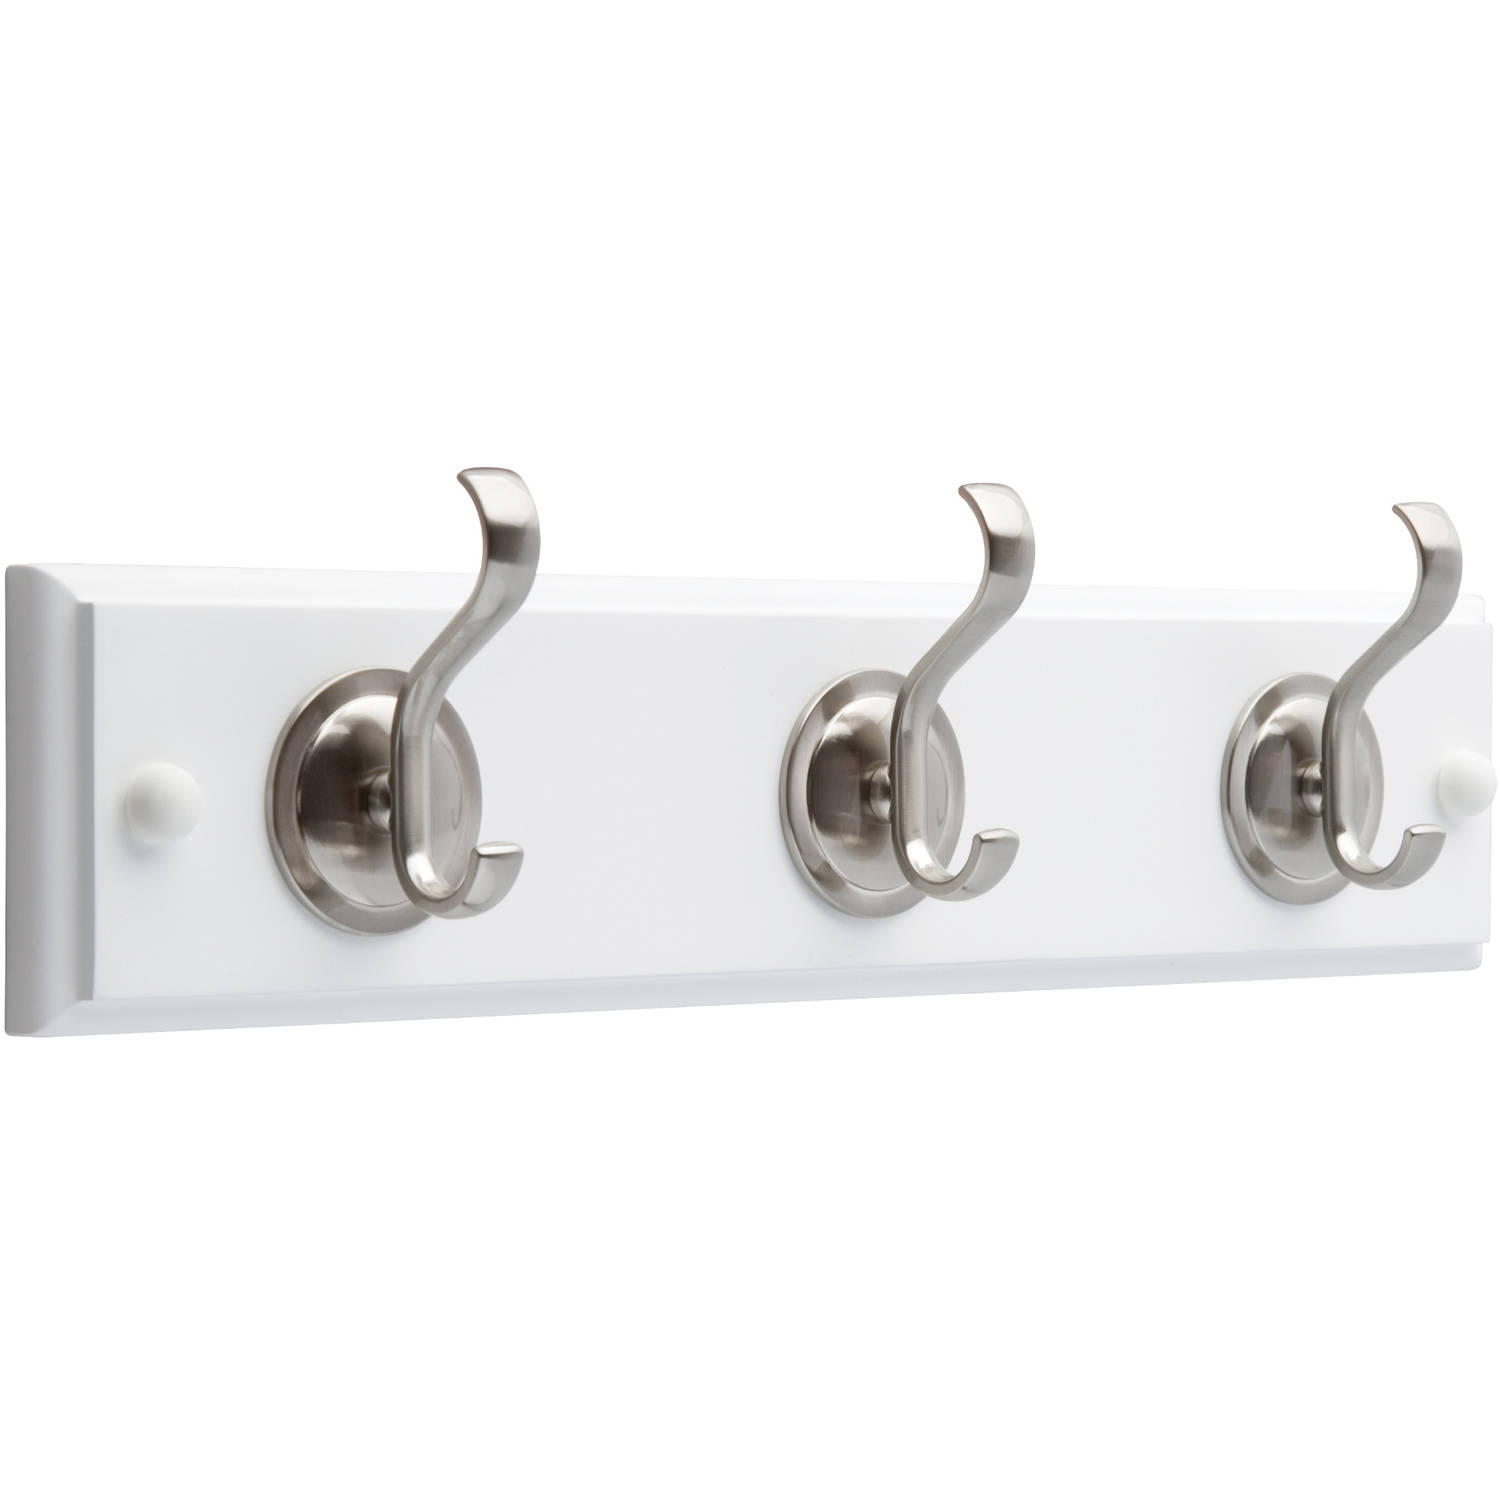 """Brainerd 14"""" Rail with 3 Coat and Hat Hooks with Round Base, Flat White and Satin Nickel"""